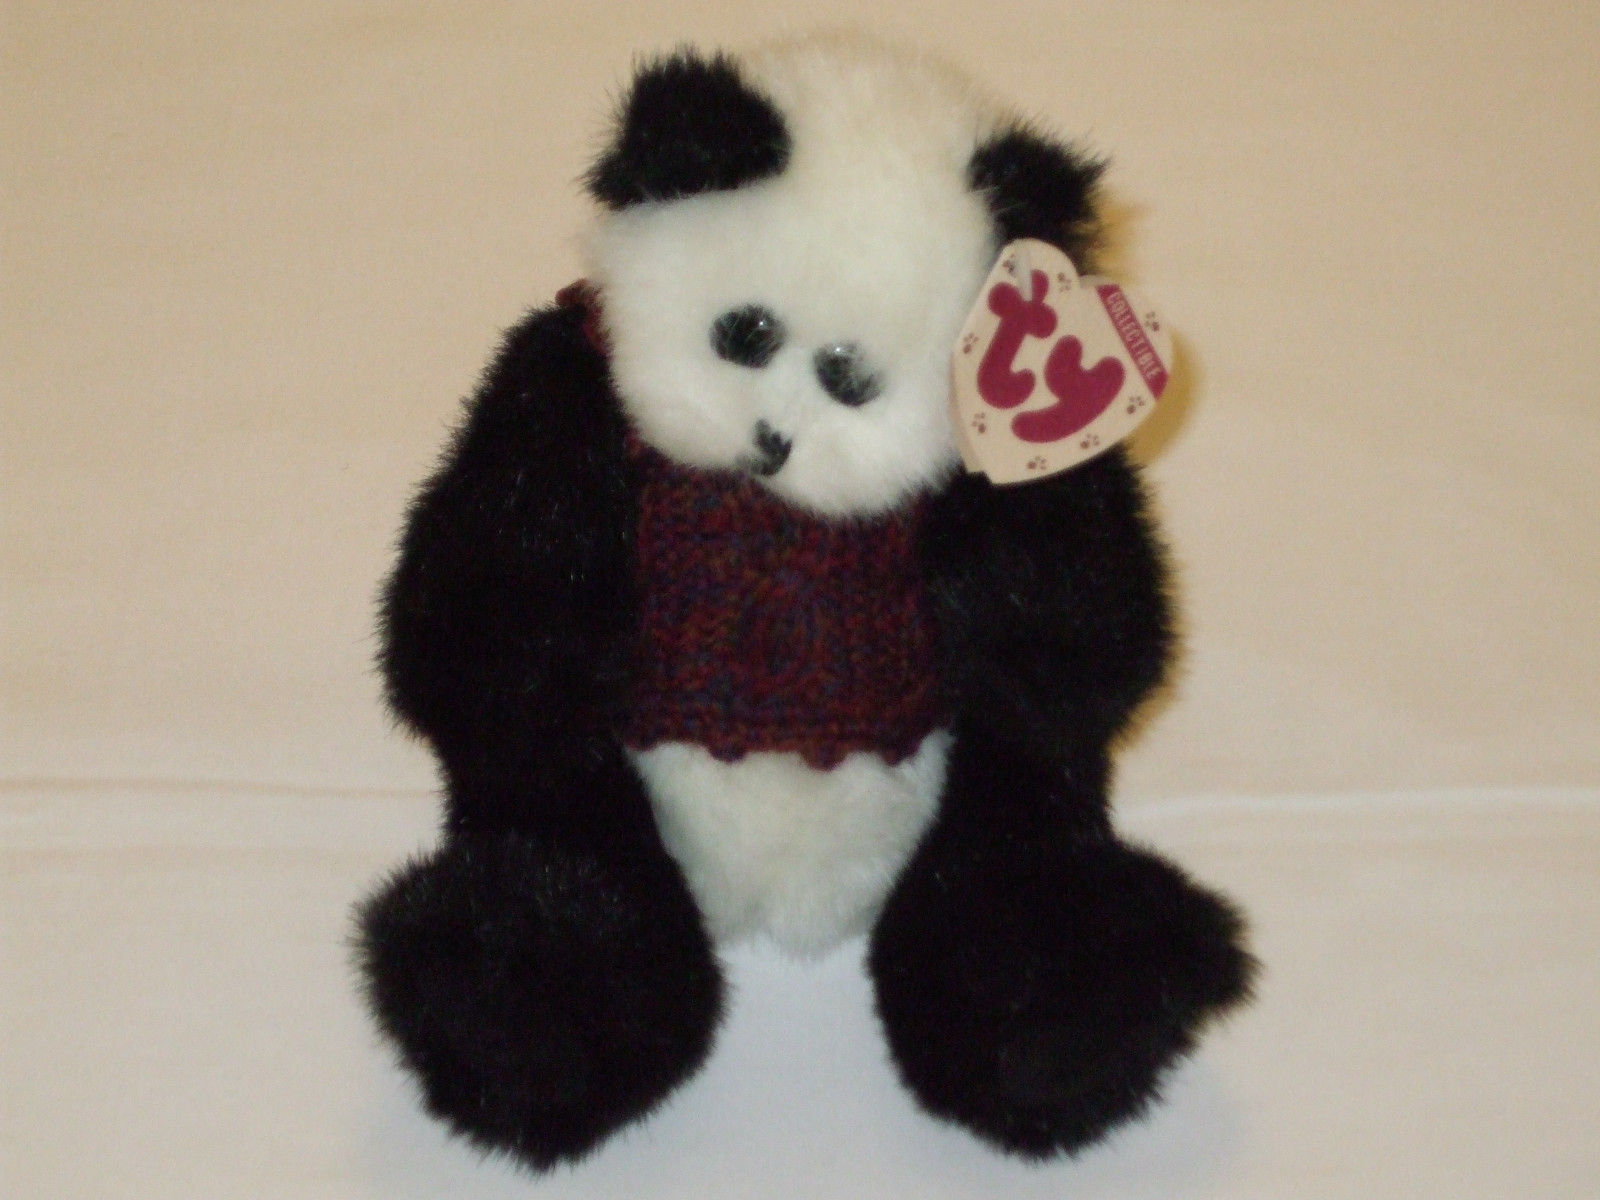 6a3b483a573 Ty Collectibles 1993 (CHECKERS) Plush Bear - and 50 similar items. S l1600